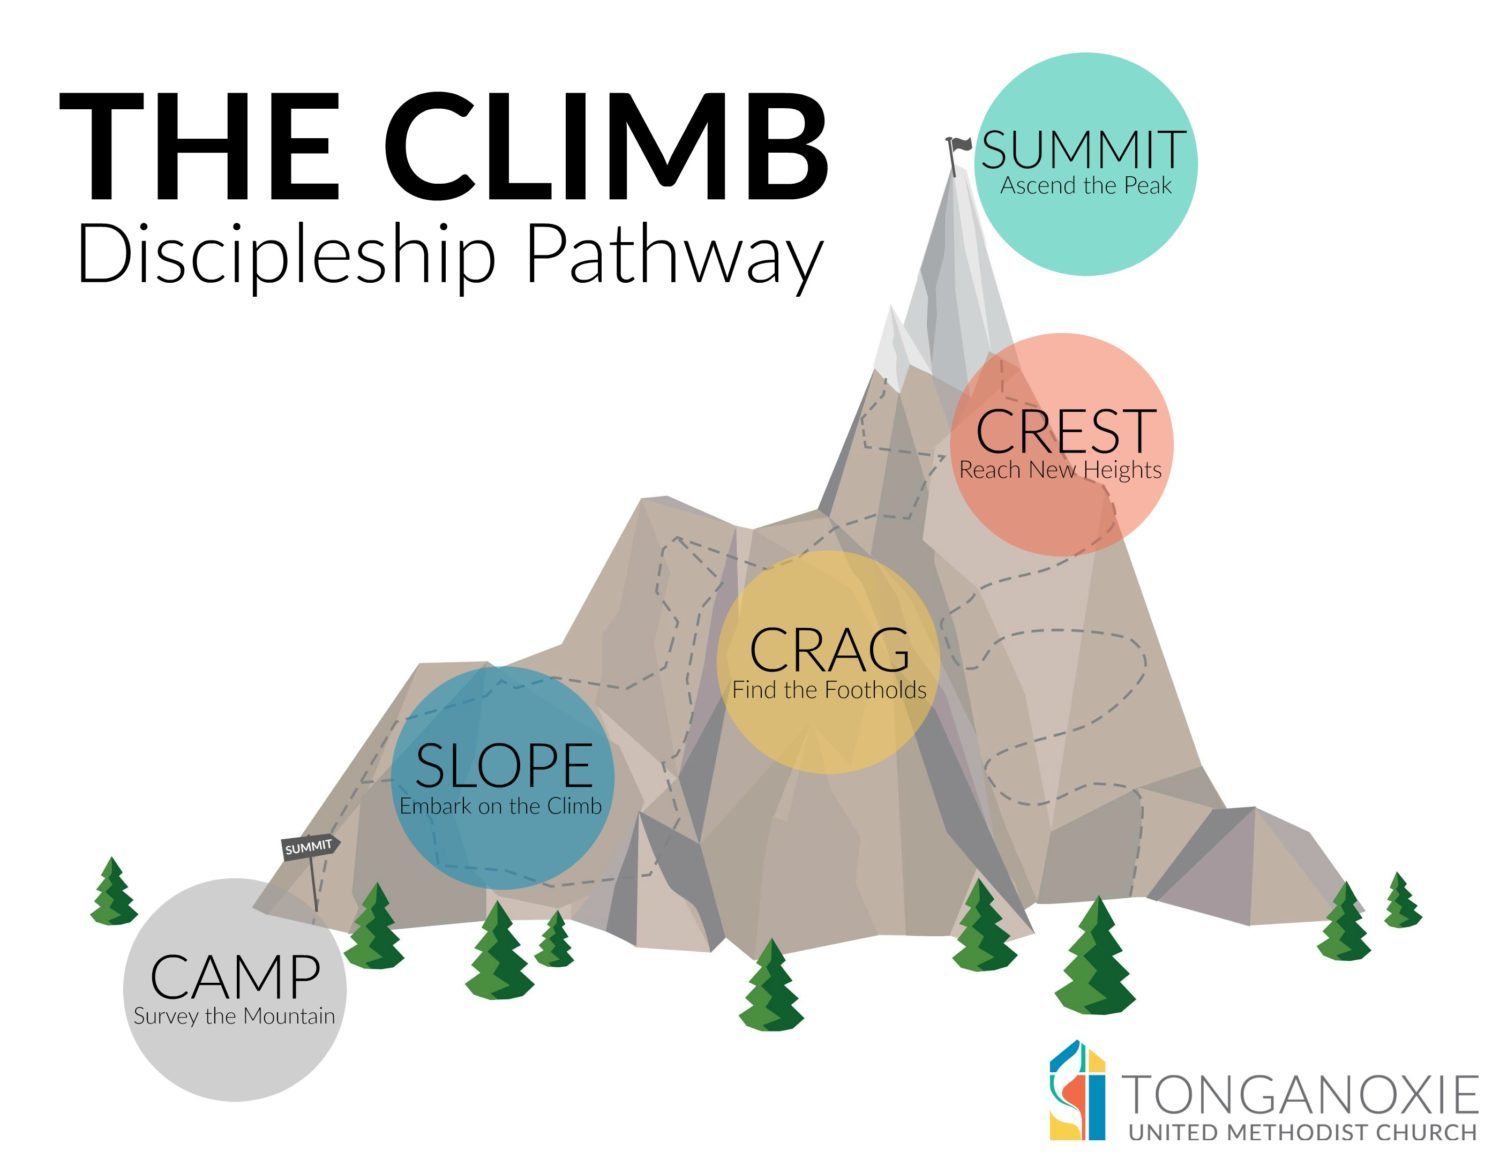 Discipleship System Tonganoxie UMC The Climb 1500x1159